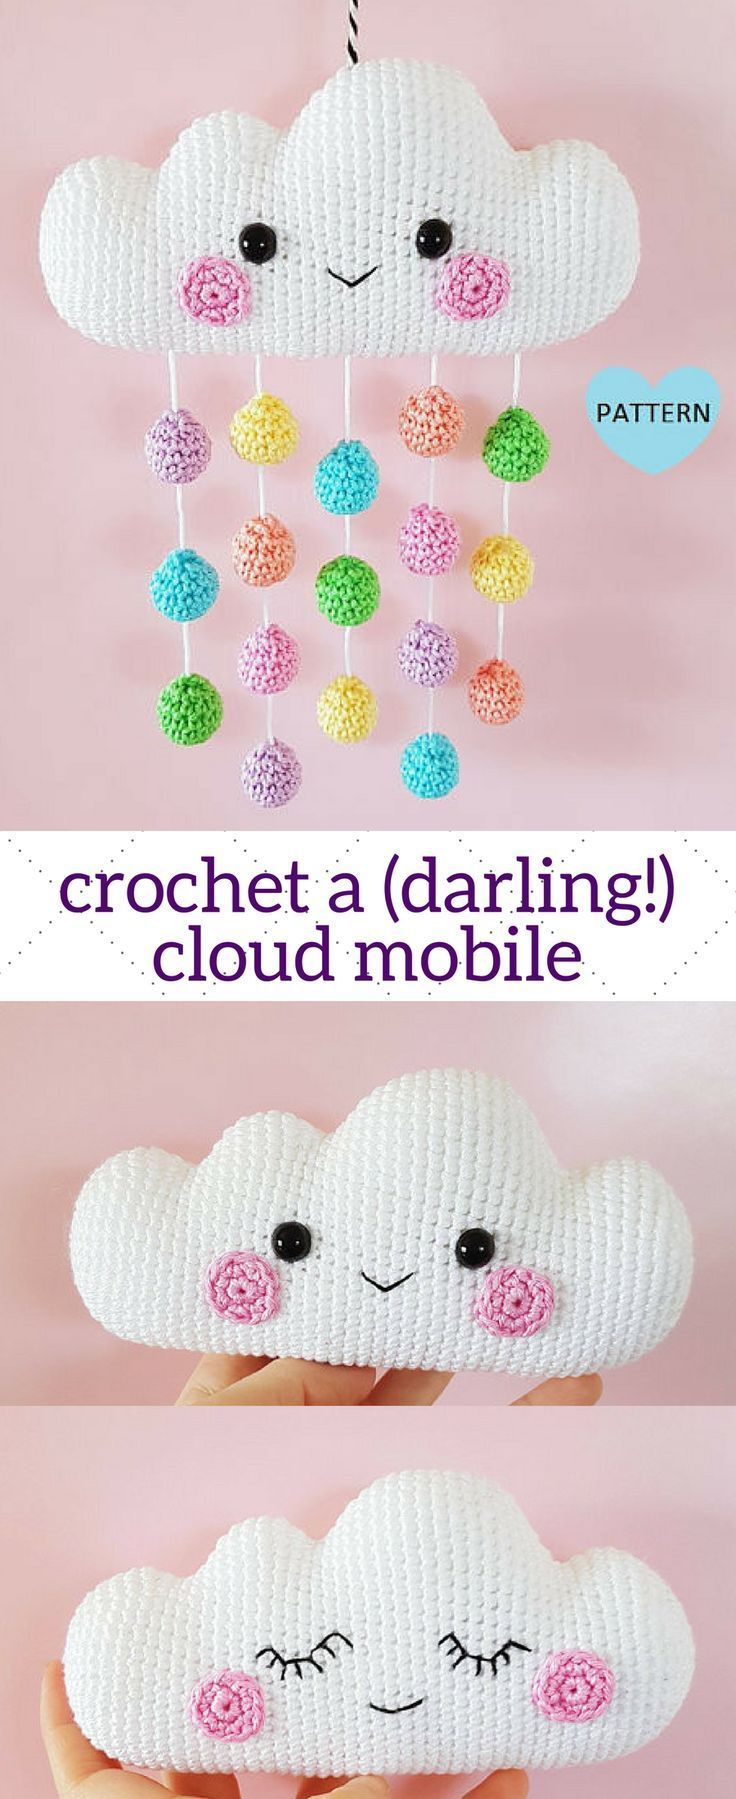 Crochet an adorable amigurumi baby mobile of a cloud with rainbow rain drops. Instant pattern download, $6. #crochet #babymobile #nurserydecor #rainbow #amigurumi #baby #pattern #patternsforcrochet #affiliate #etsy